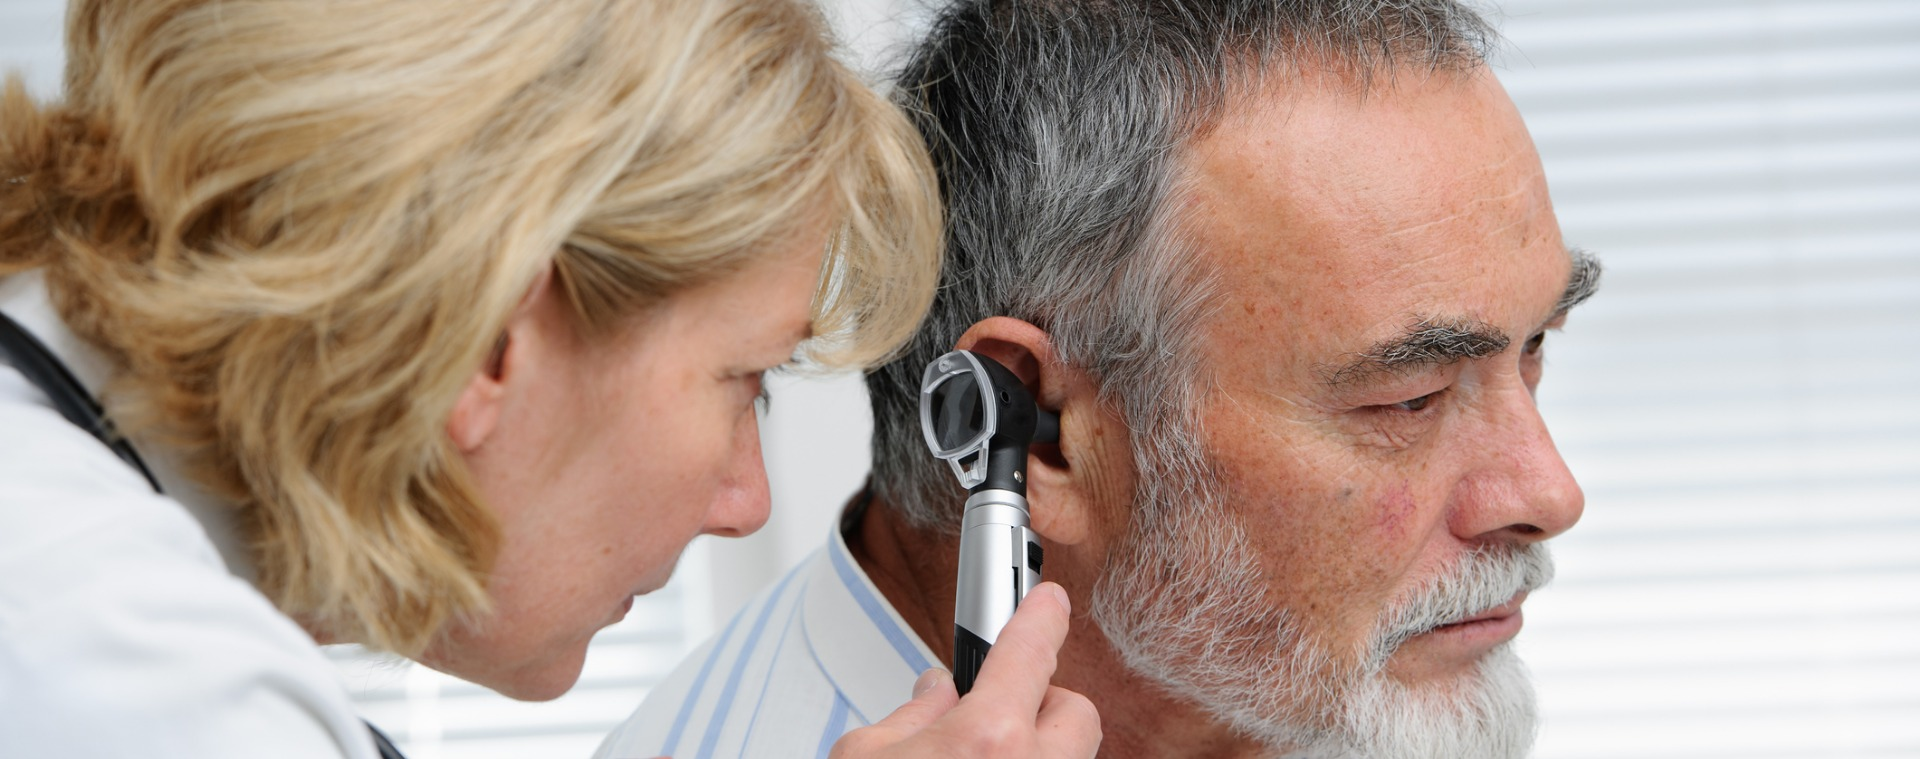 What Are the Effects of Hearing Impairment on General Health?